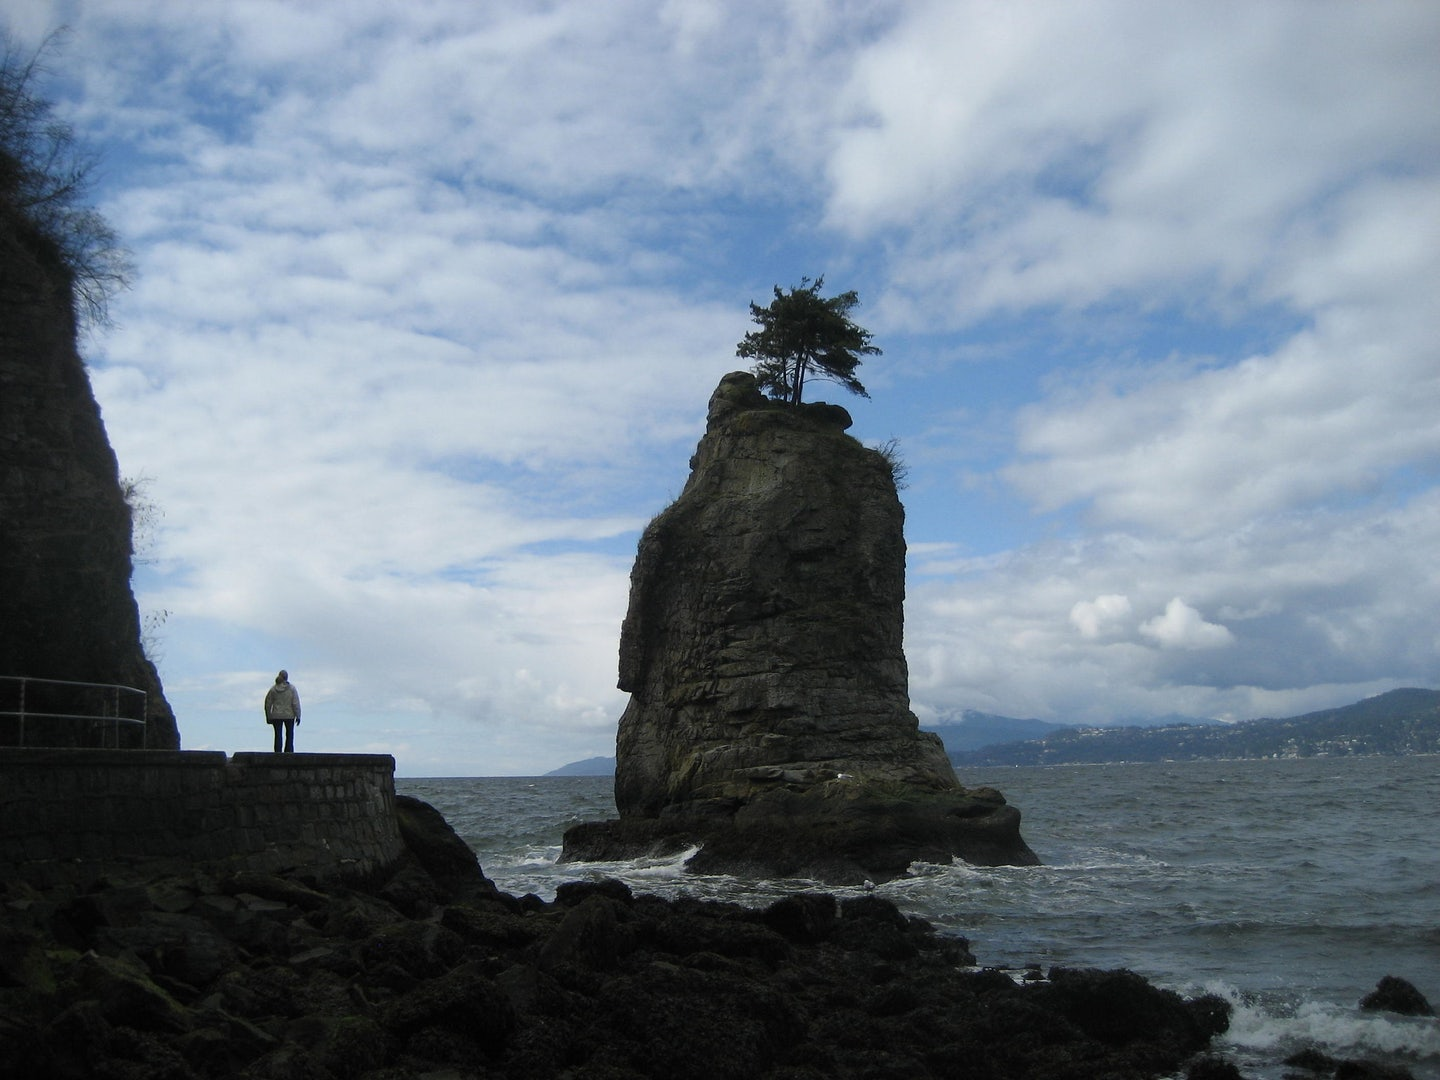 Siwash Rock by the seawall in Vancouver